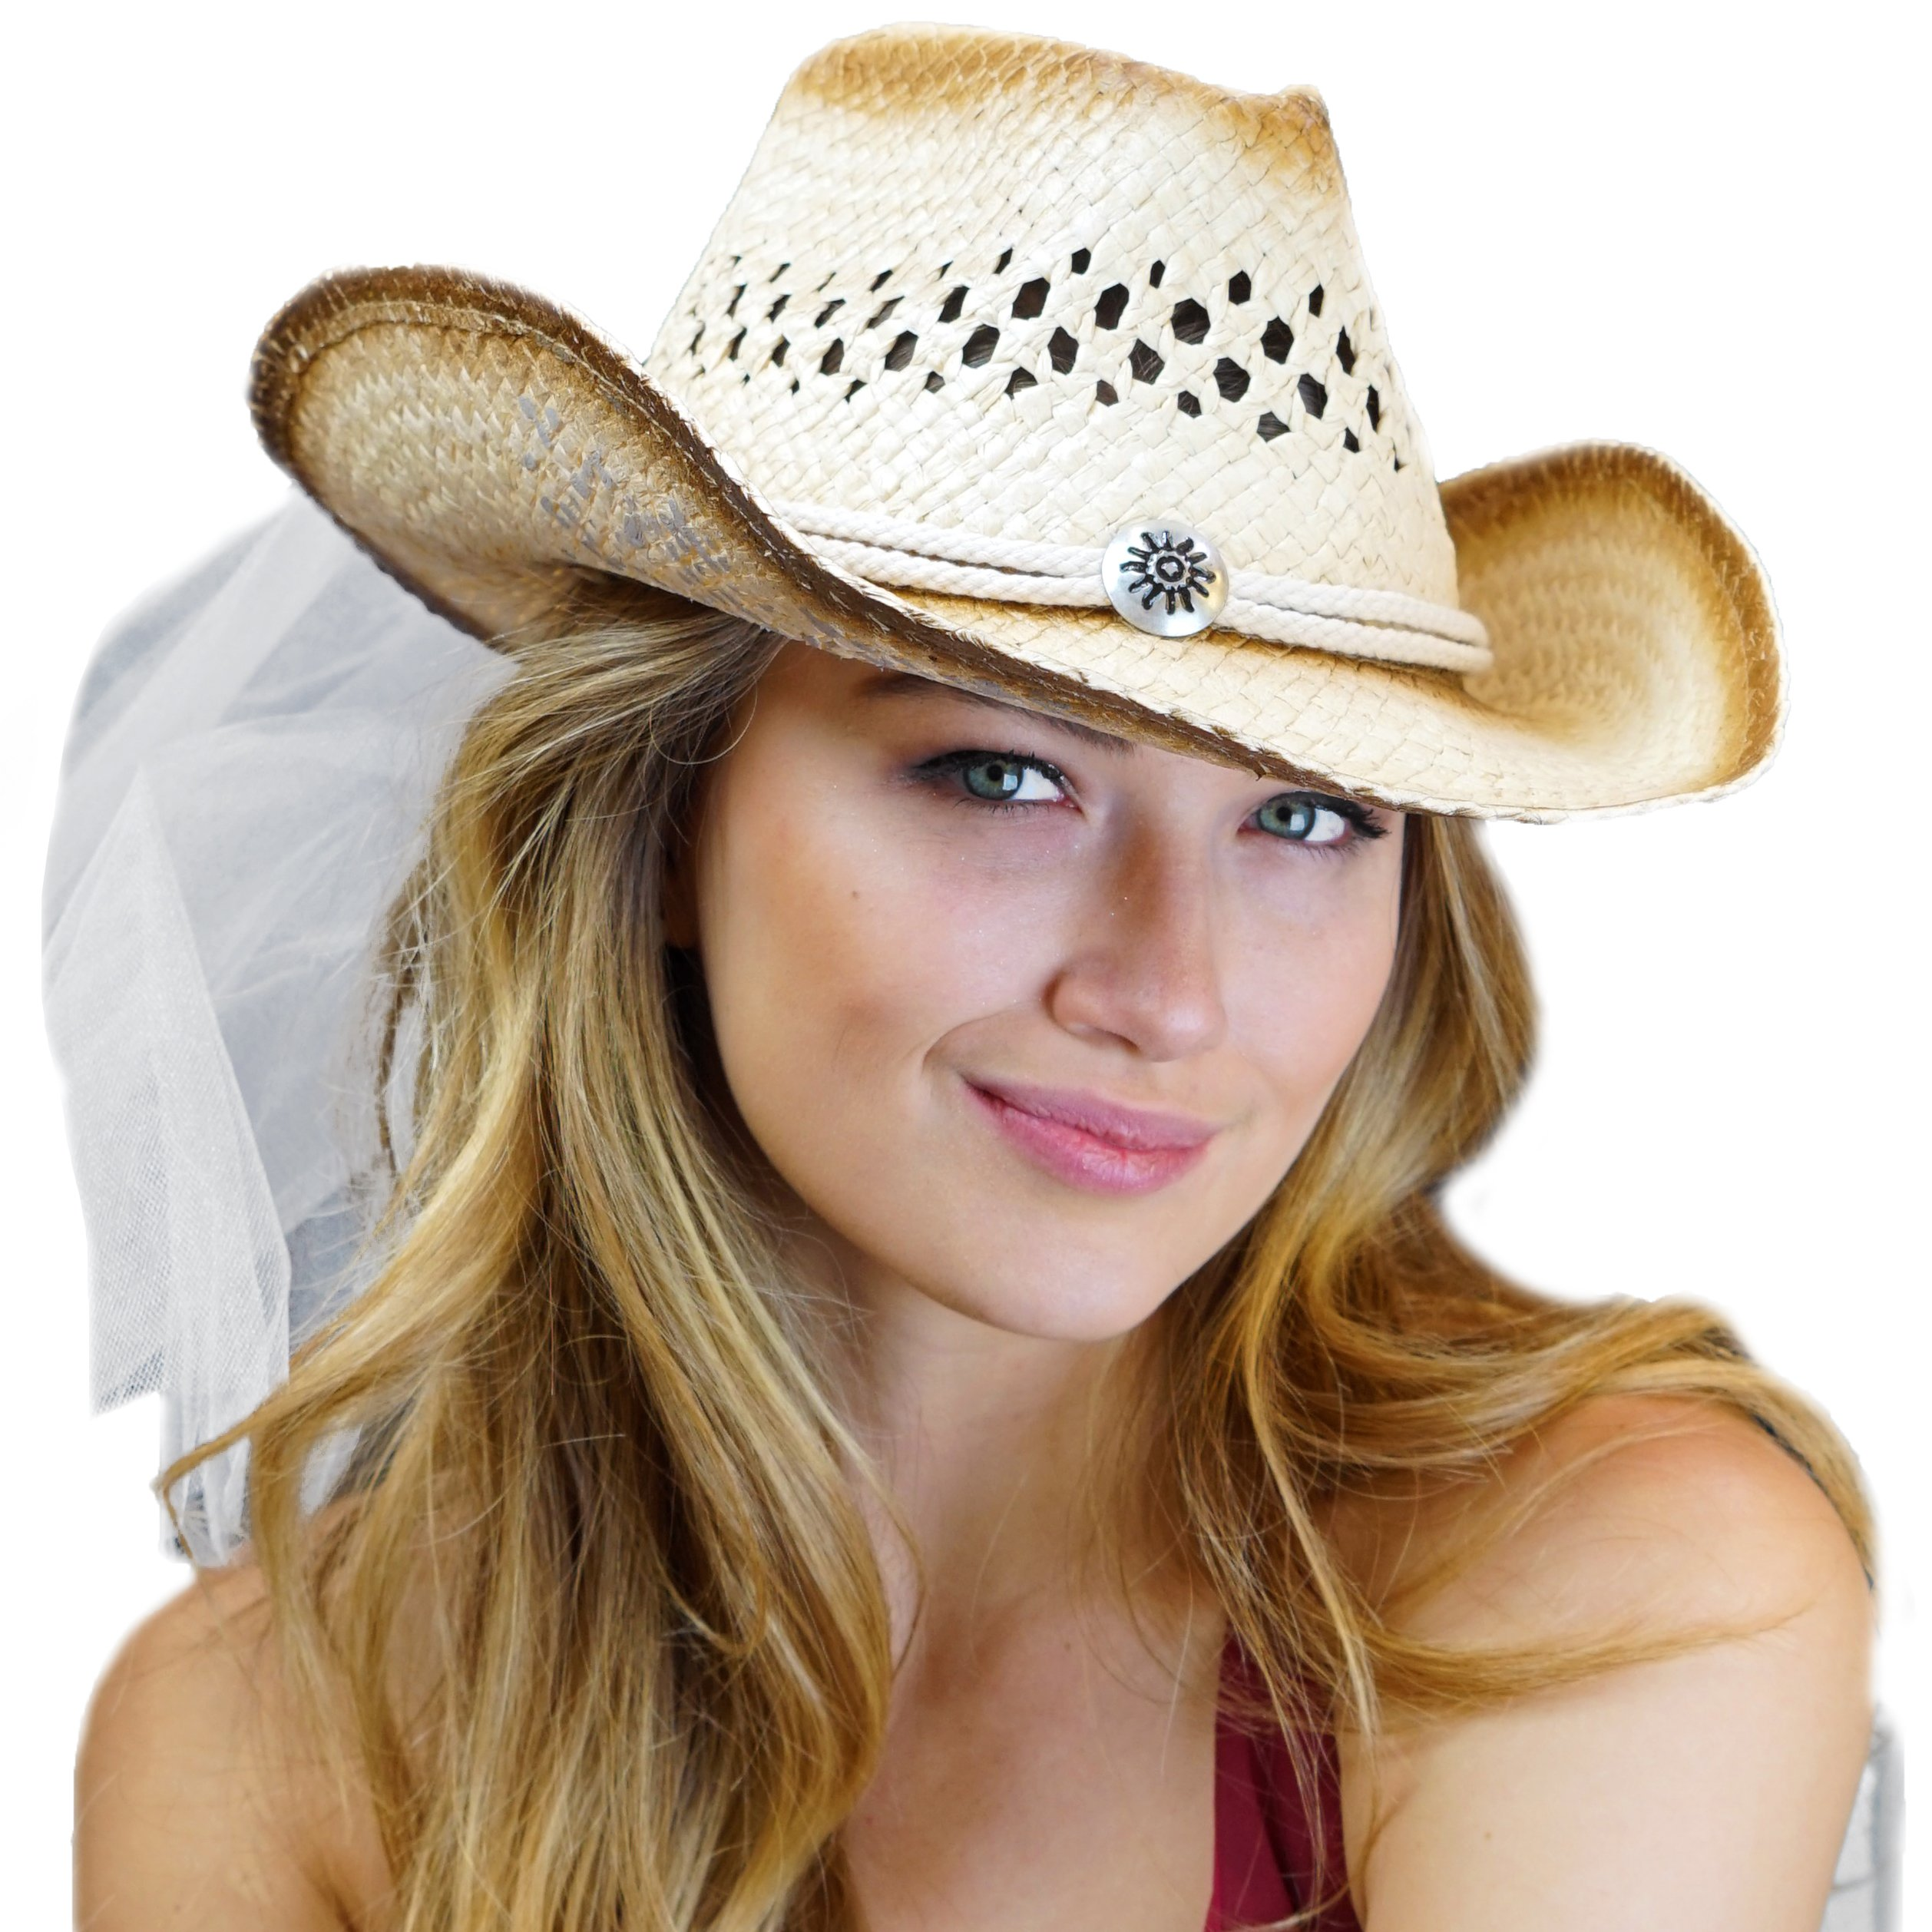 Country Western Medallion Bride Straw Hat with White Veil - Cowgirl Bachelorette Party, Bridal Shower, Bride To Be Southern Wedding Accessory